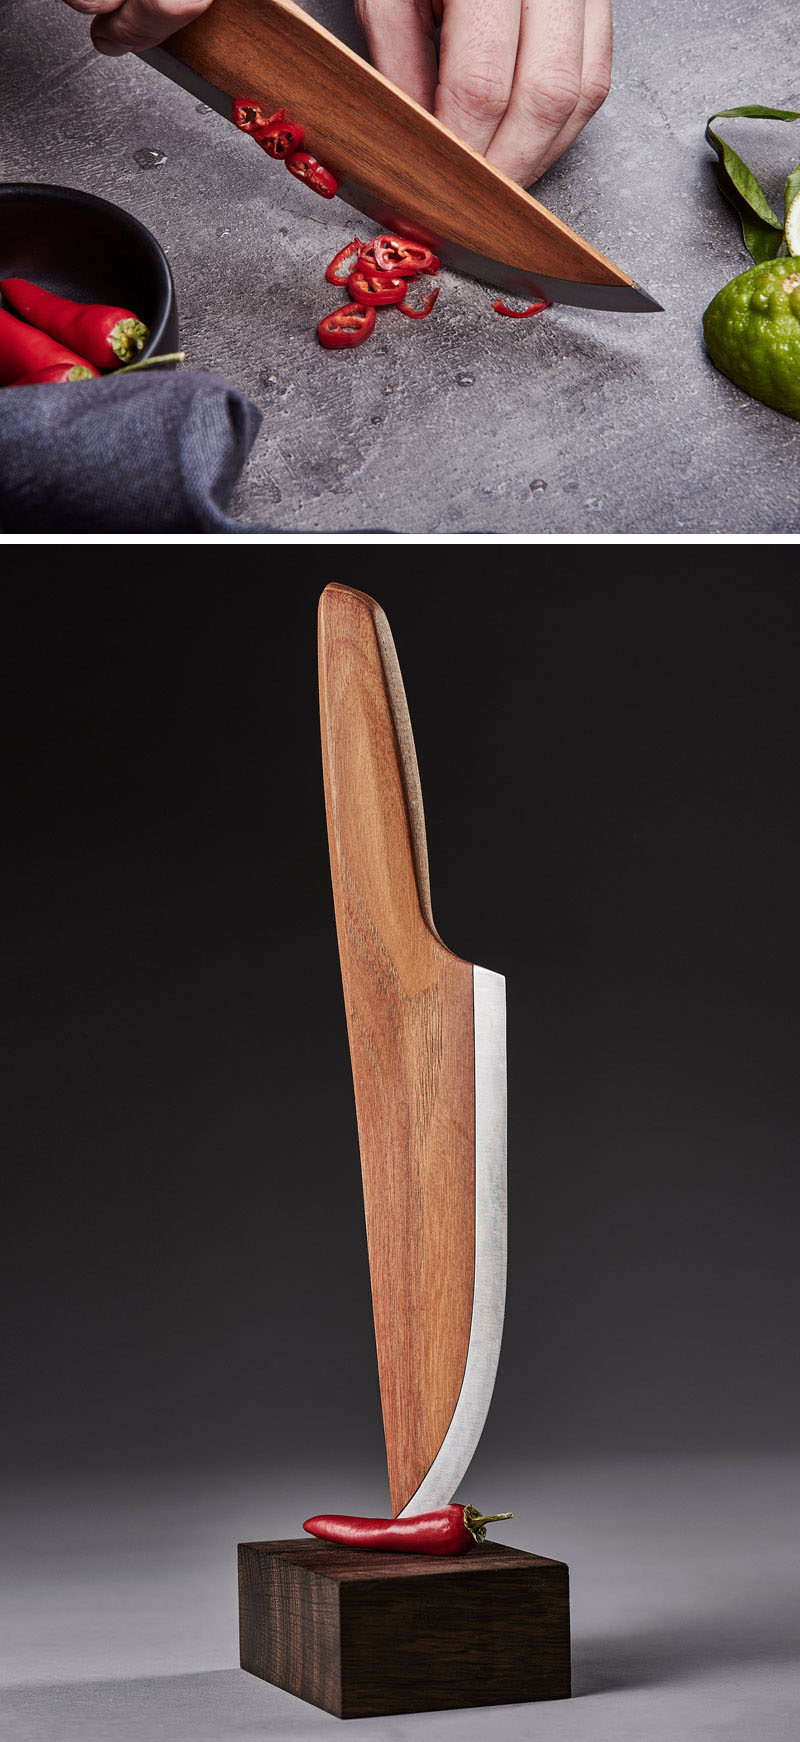 German design firm LIGNUM have created //SKID - a sustainable chef knife made from 97% wood and 3% high alloyed carbon steel.